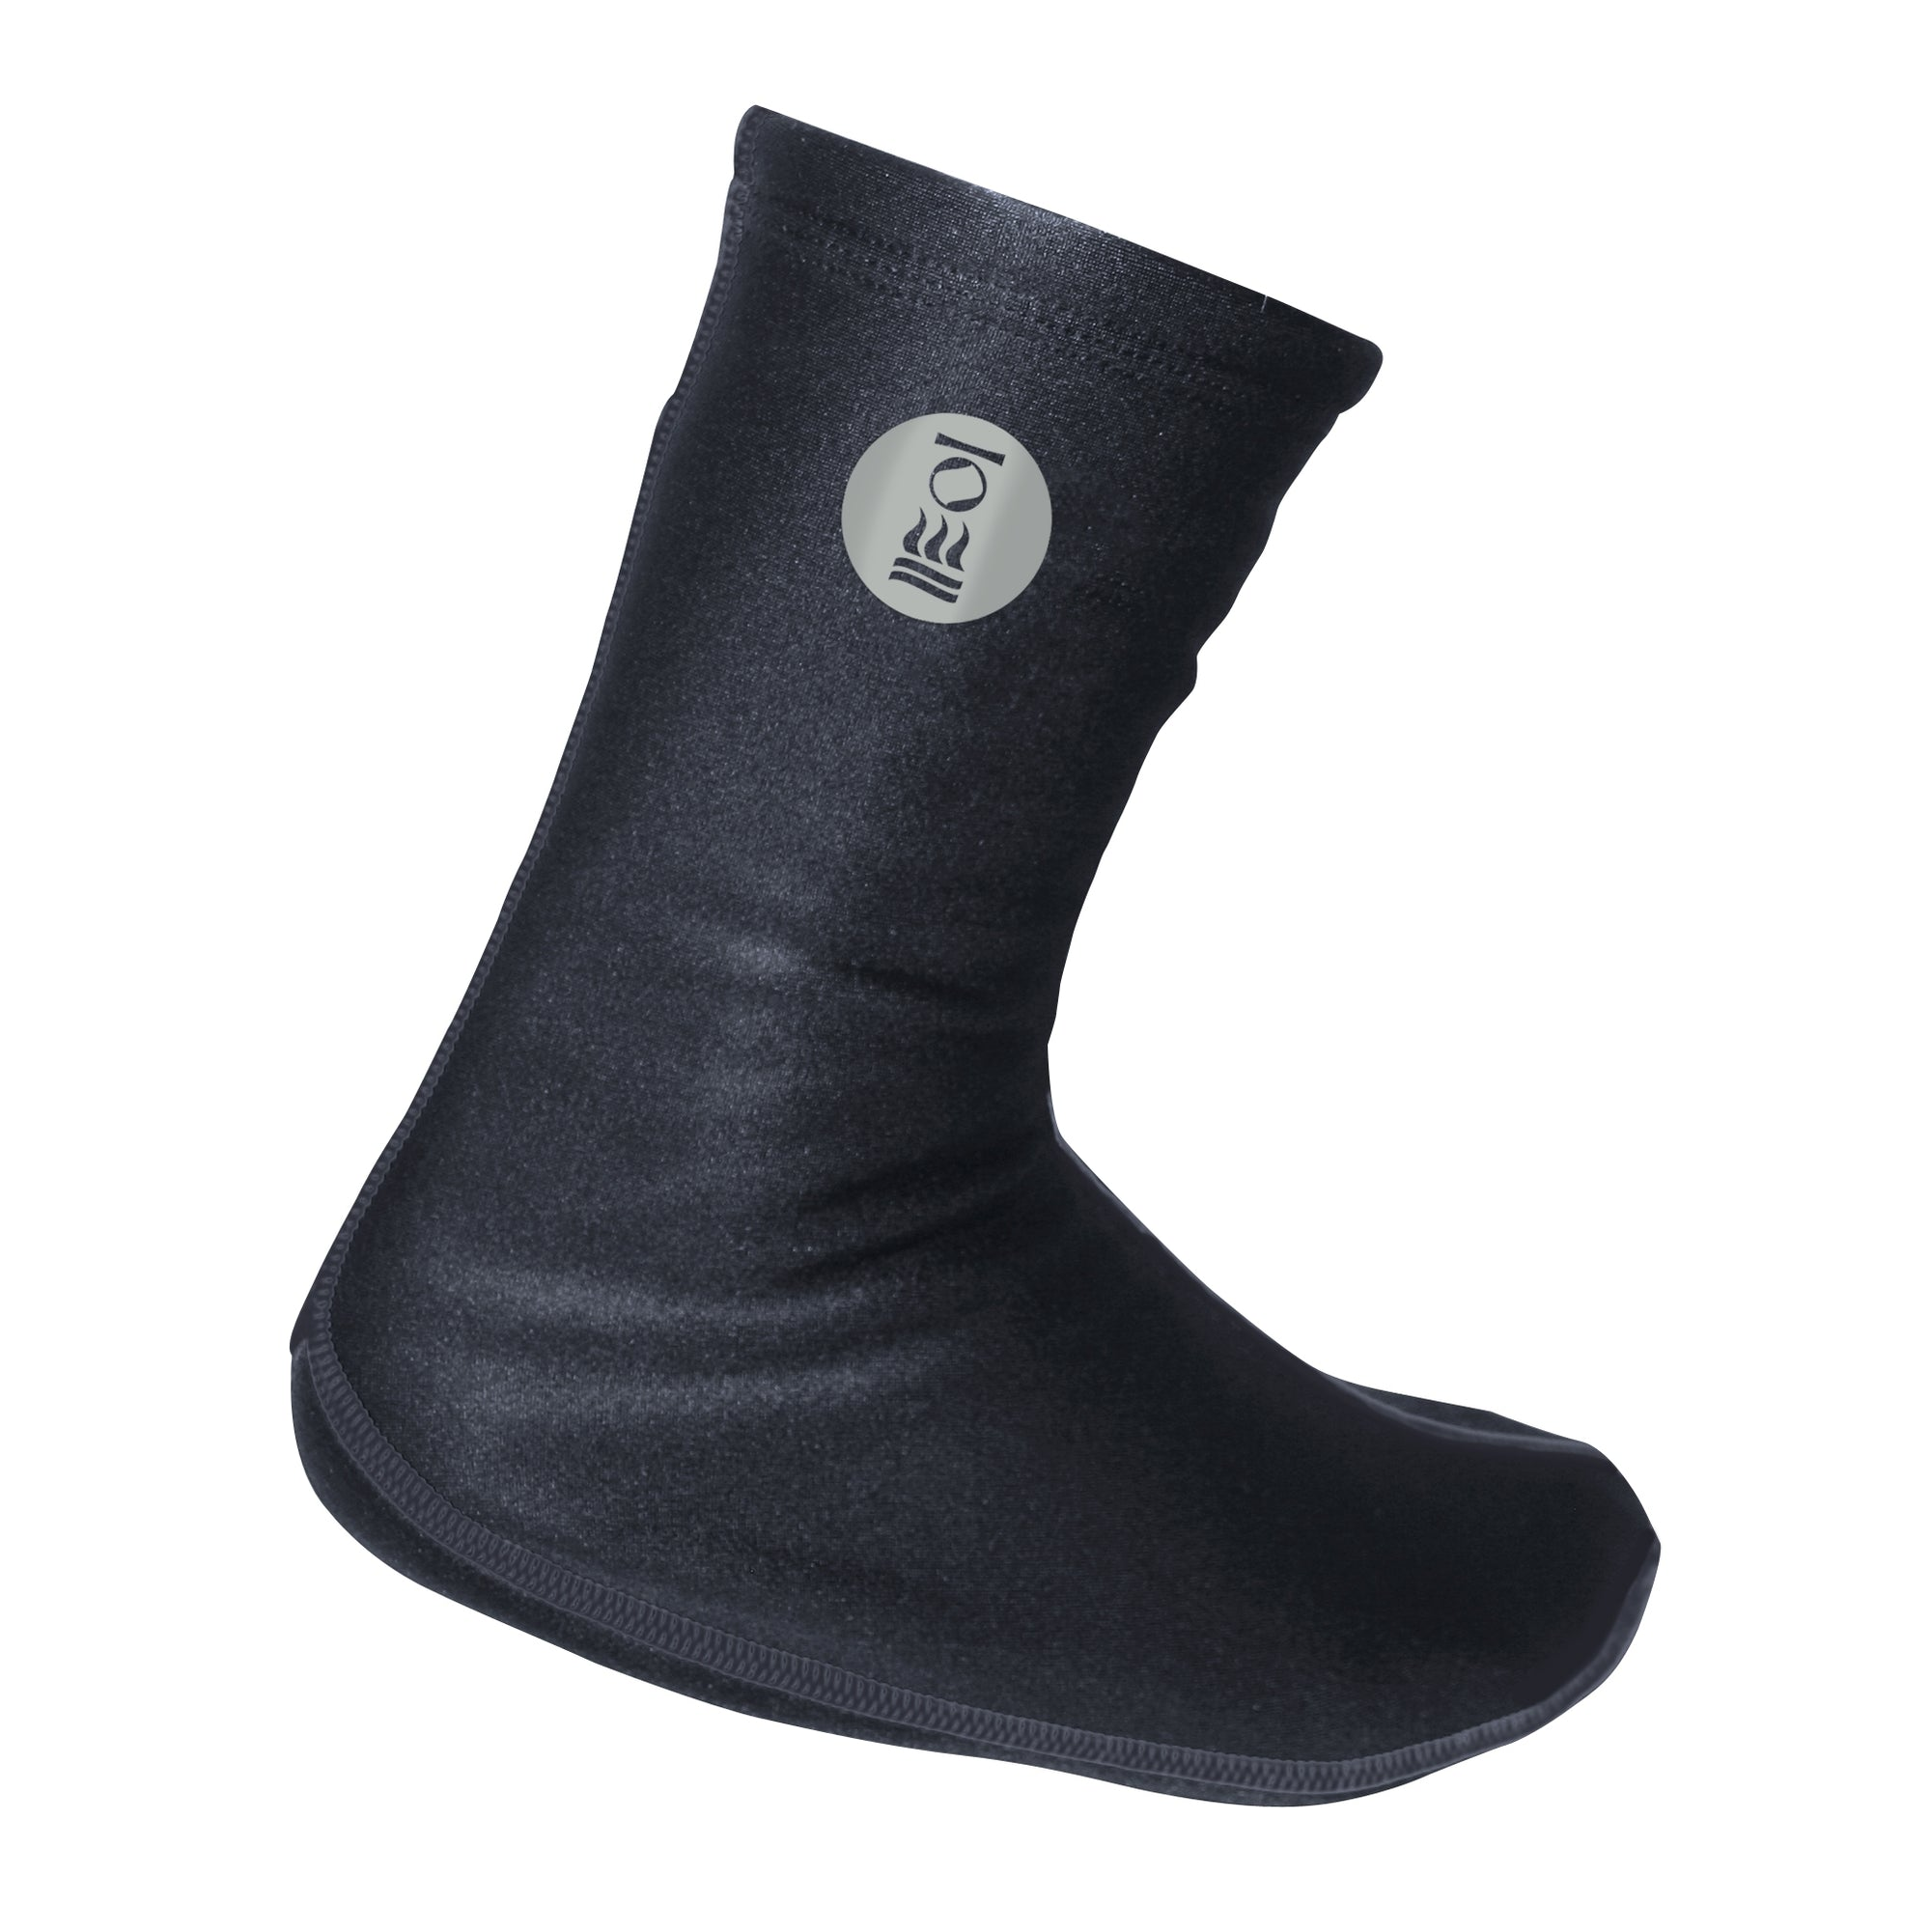 FOURTH ELEMENT THERMOCLINE SOCKS